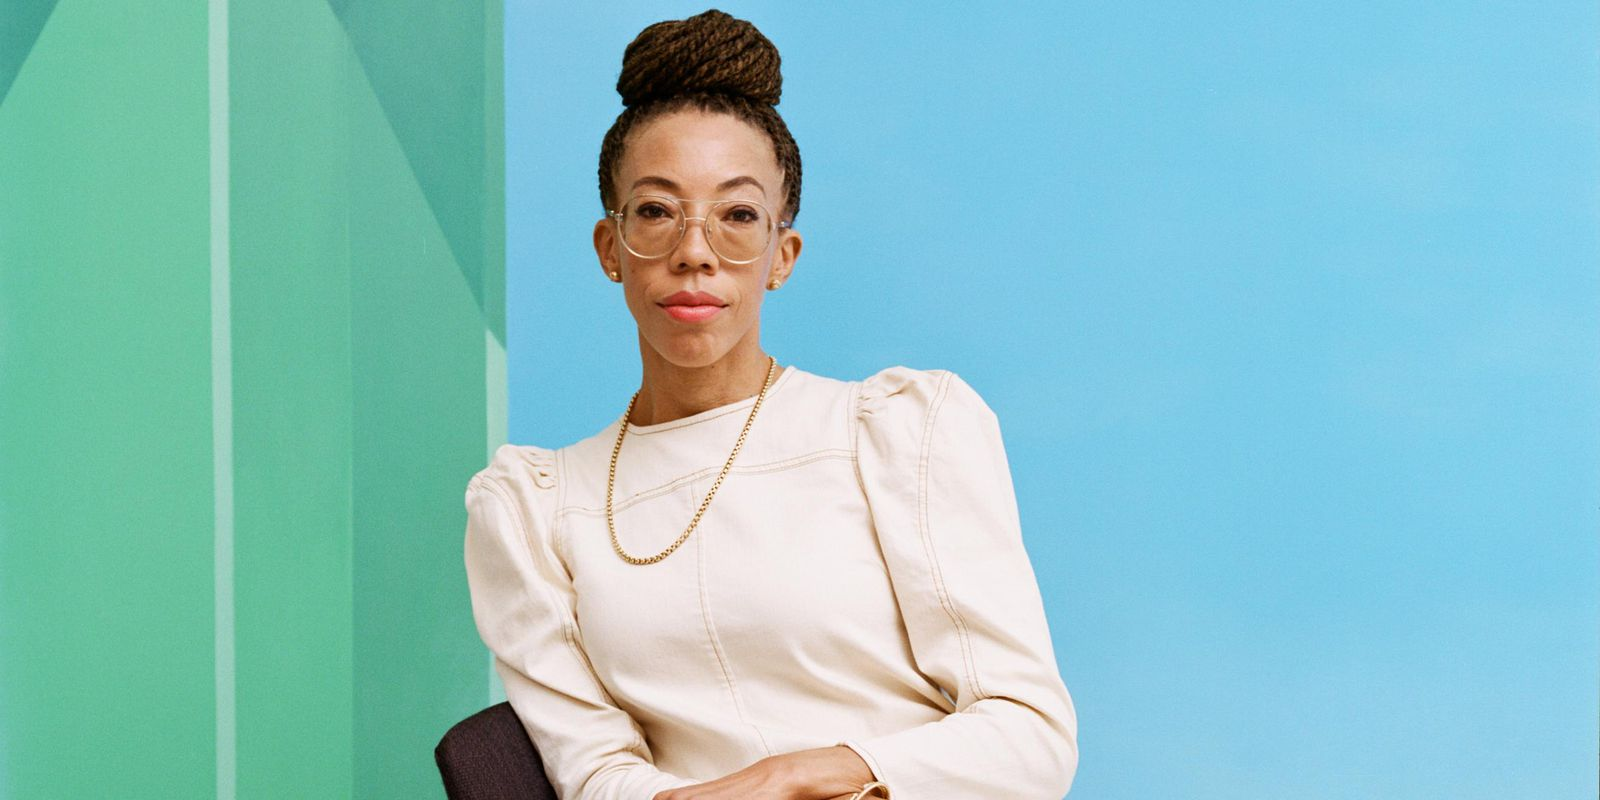 Why the Newest Works by Amy Sherald Focus on Ordinary People